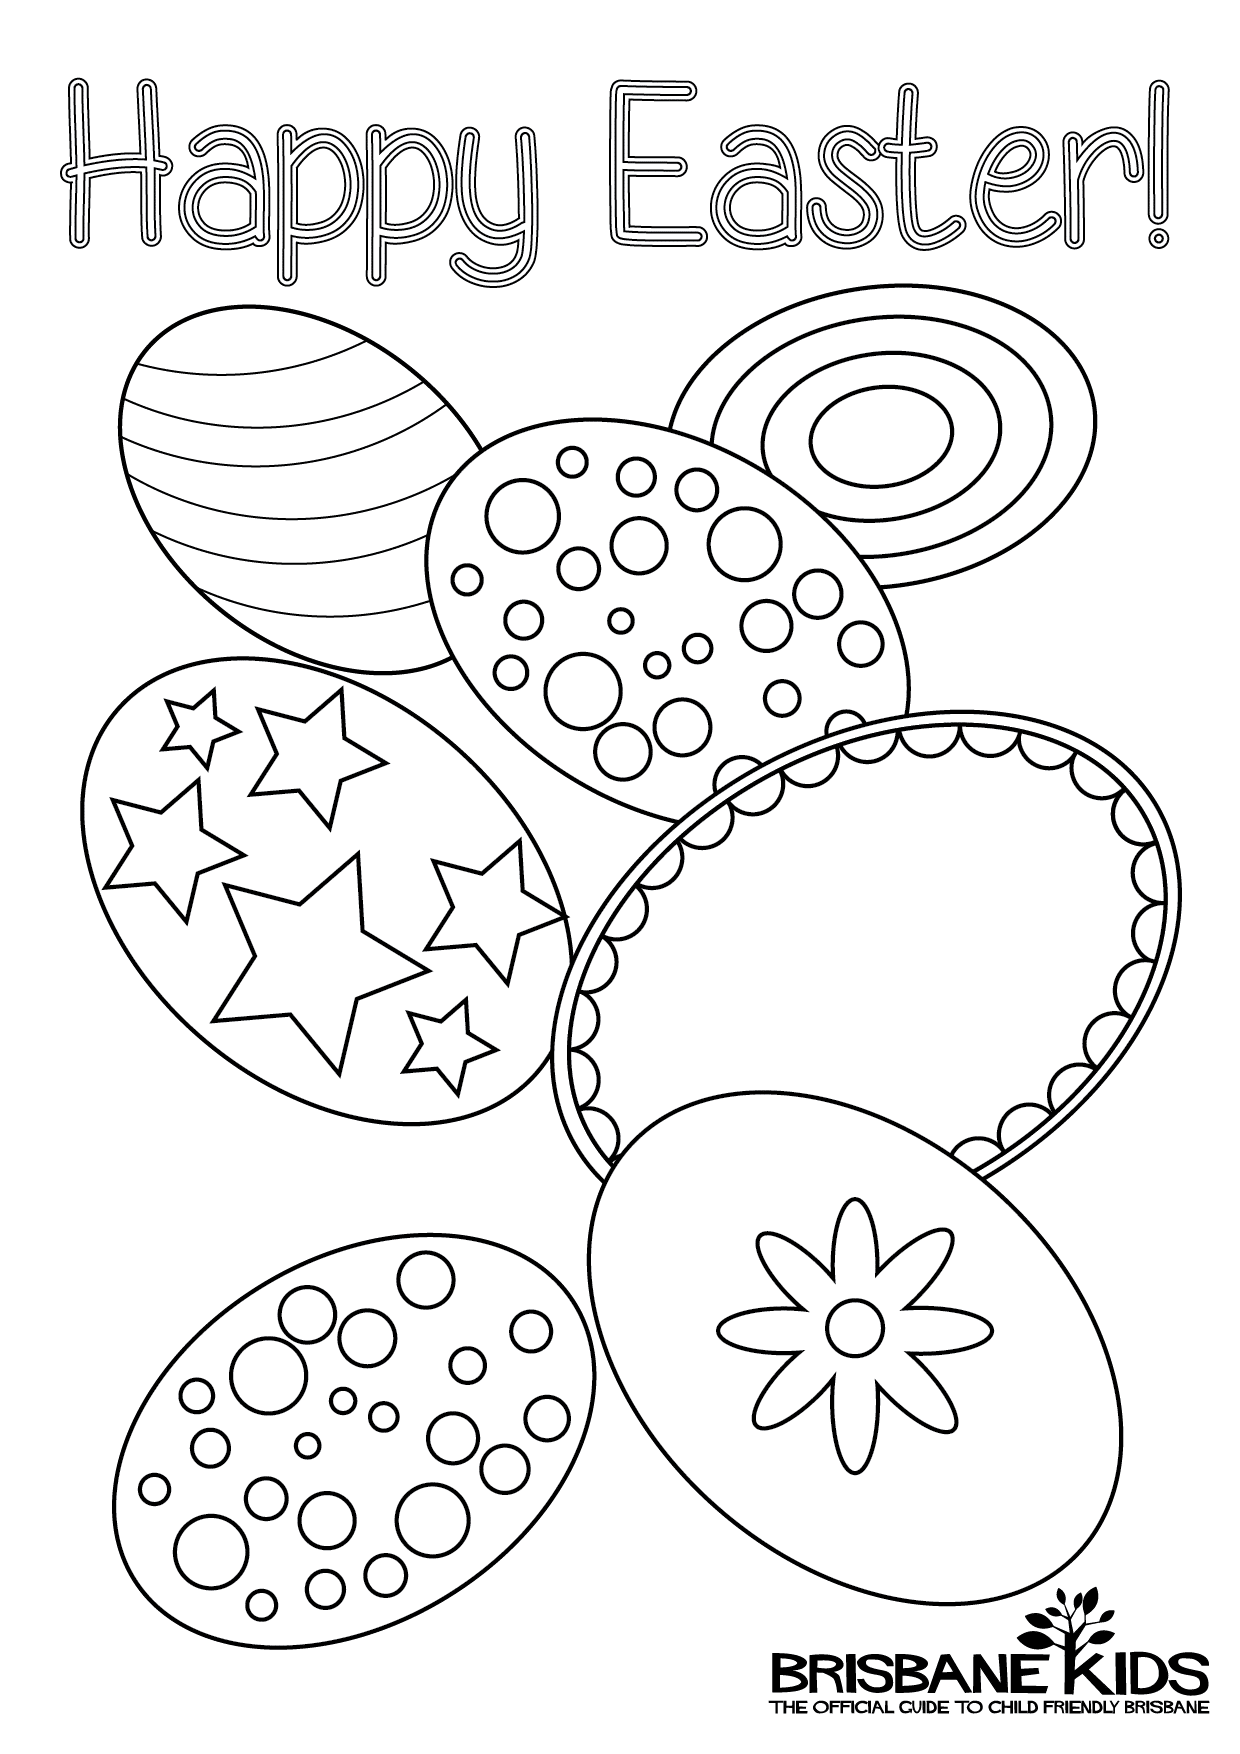 Easter Colouring Pages • Brisbane Kids